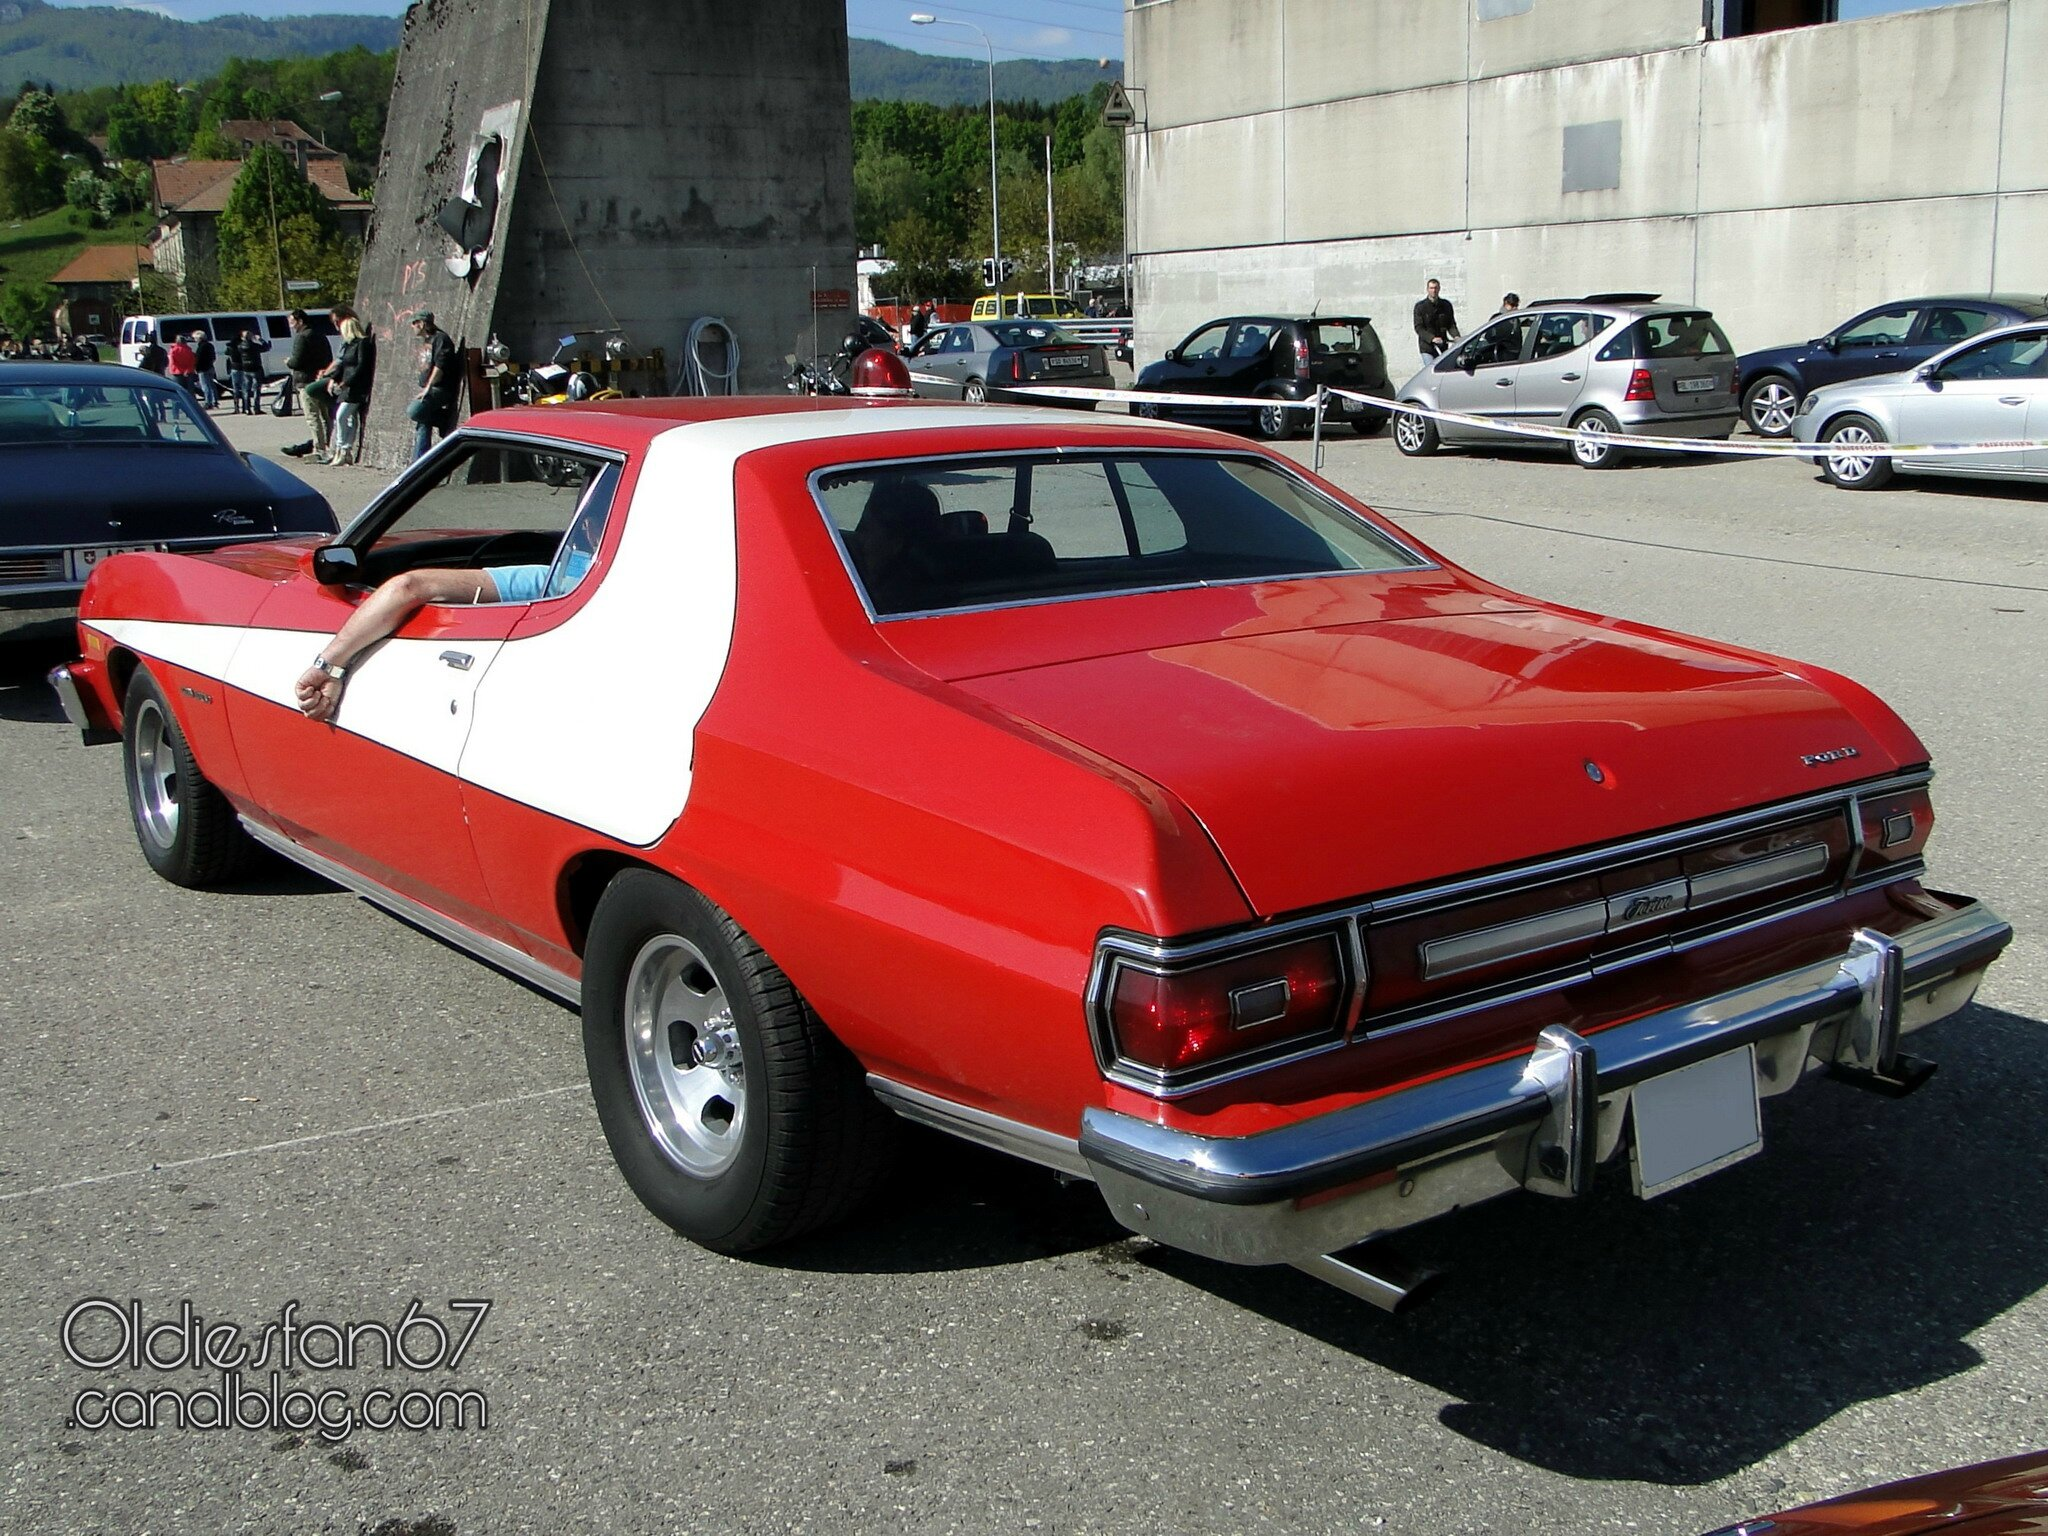 ford gran torino sport hardtop coupe starsky and hutch 1974 1976 oldiesfan67 mon blog auto. Black Bedroom Furniture Sets. Home Design Ideas